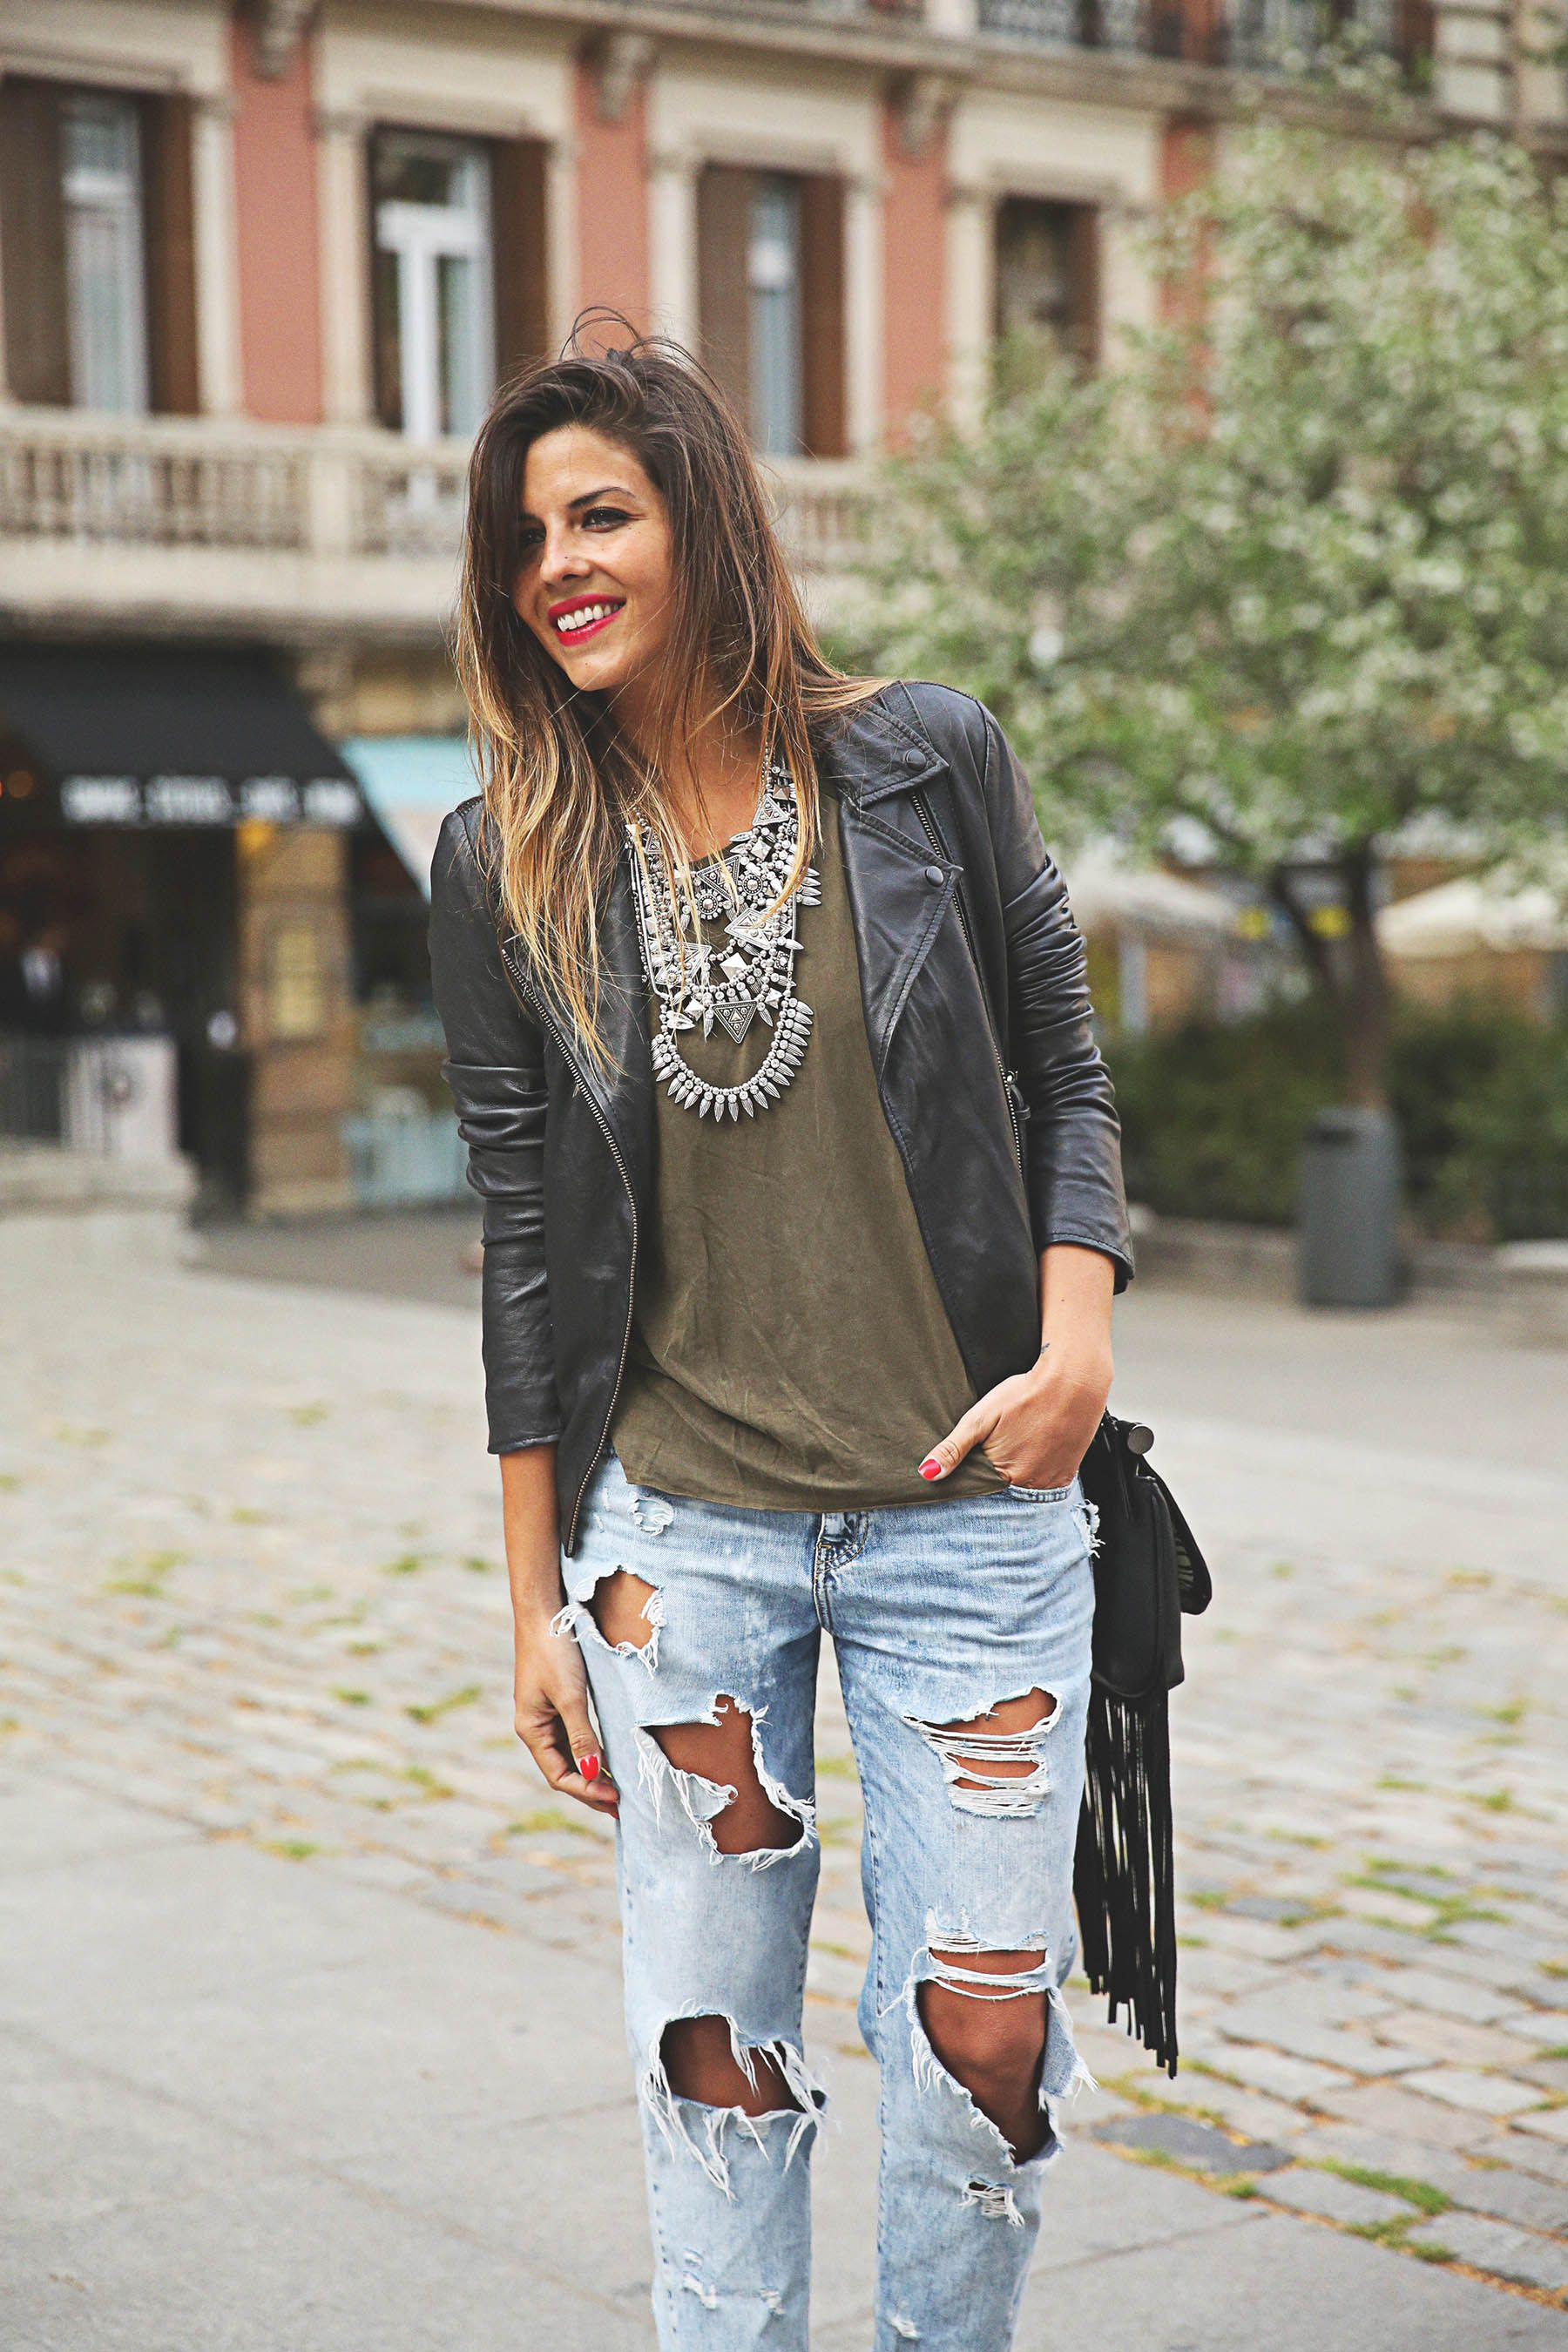 Trendy Taste Look Outfit Street Style Ootd Blog Blogger Fashion Spain Moda Espa A Boyfriend